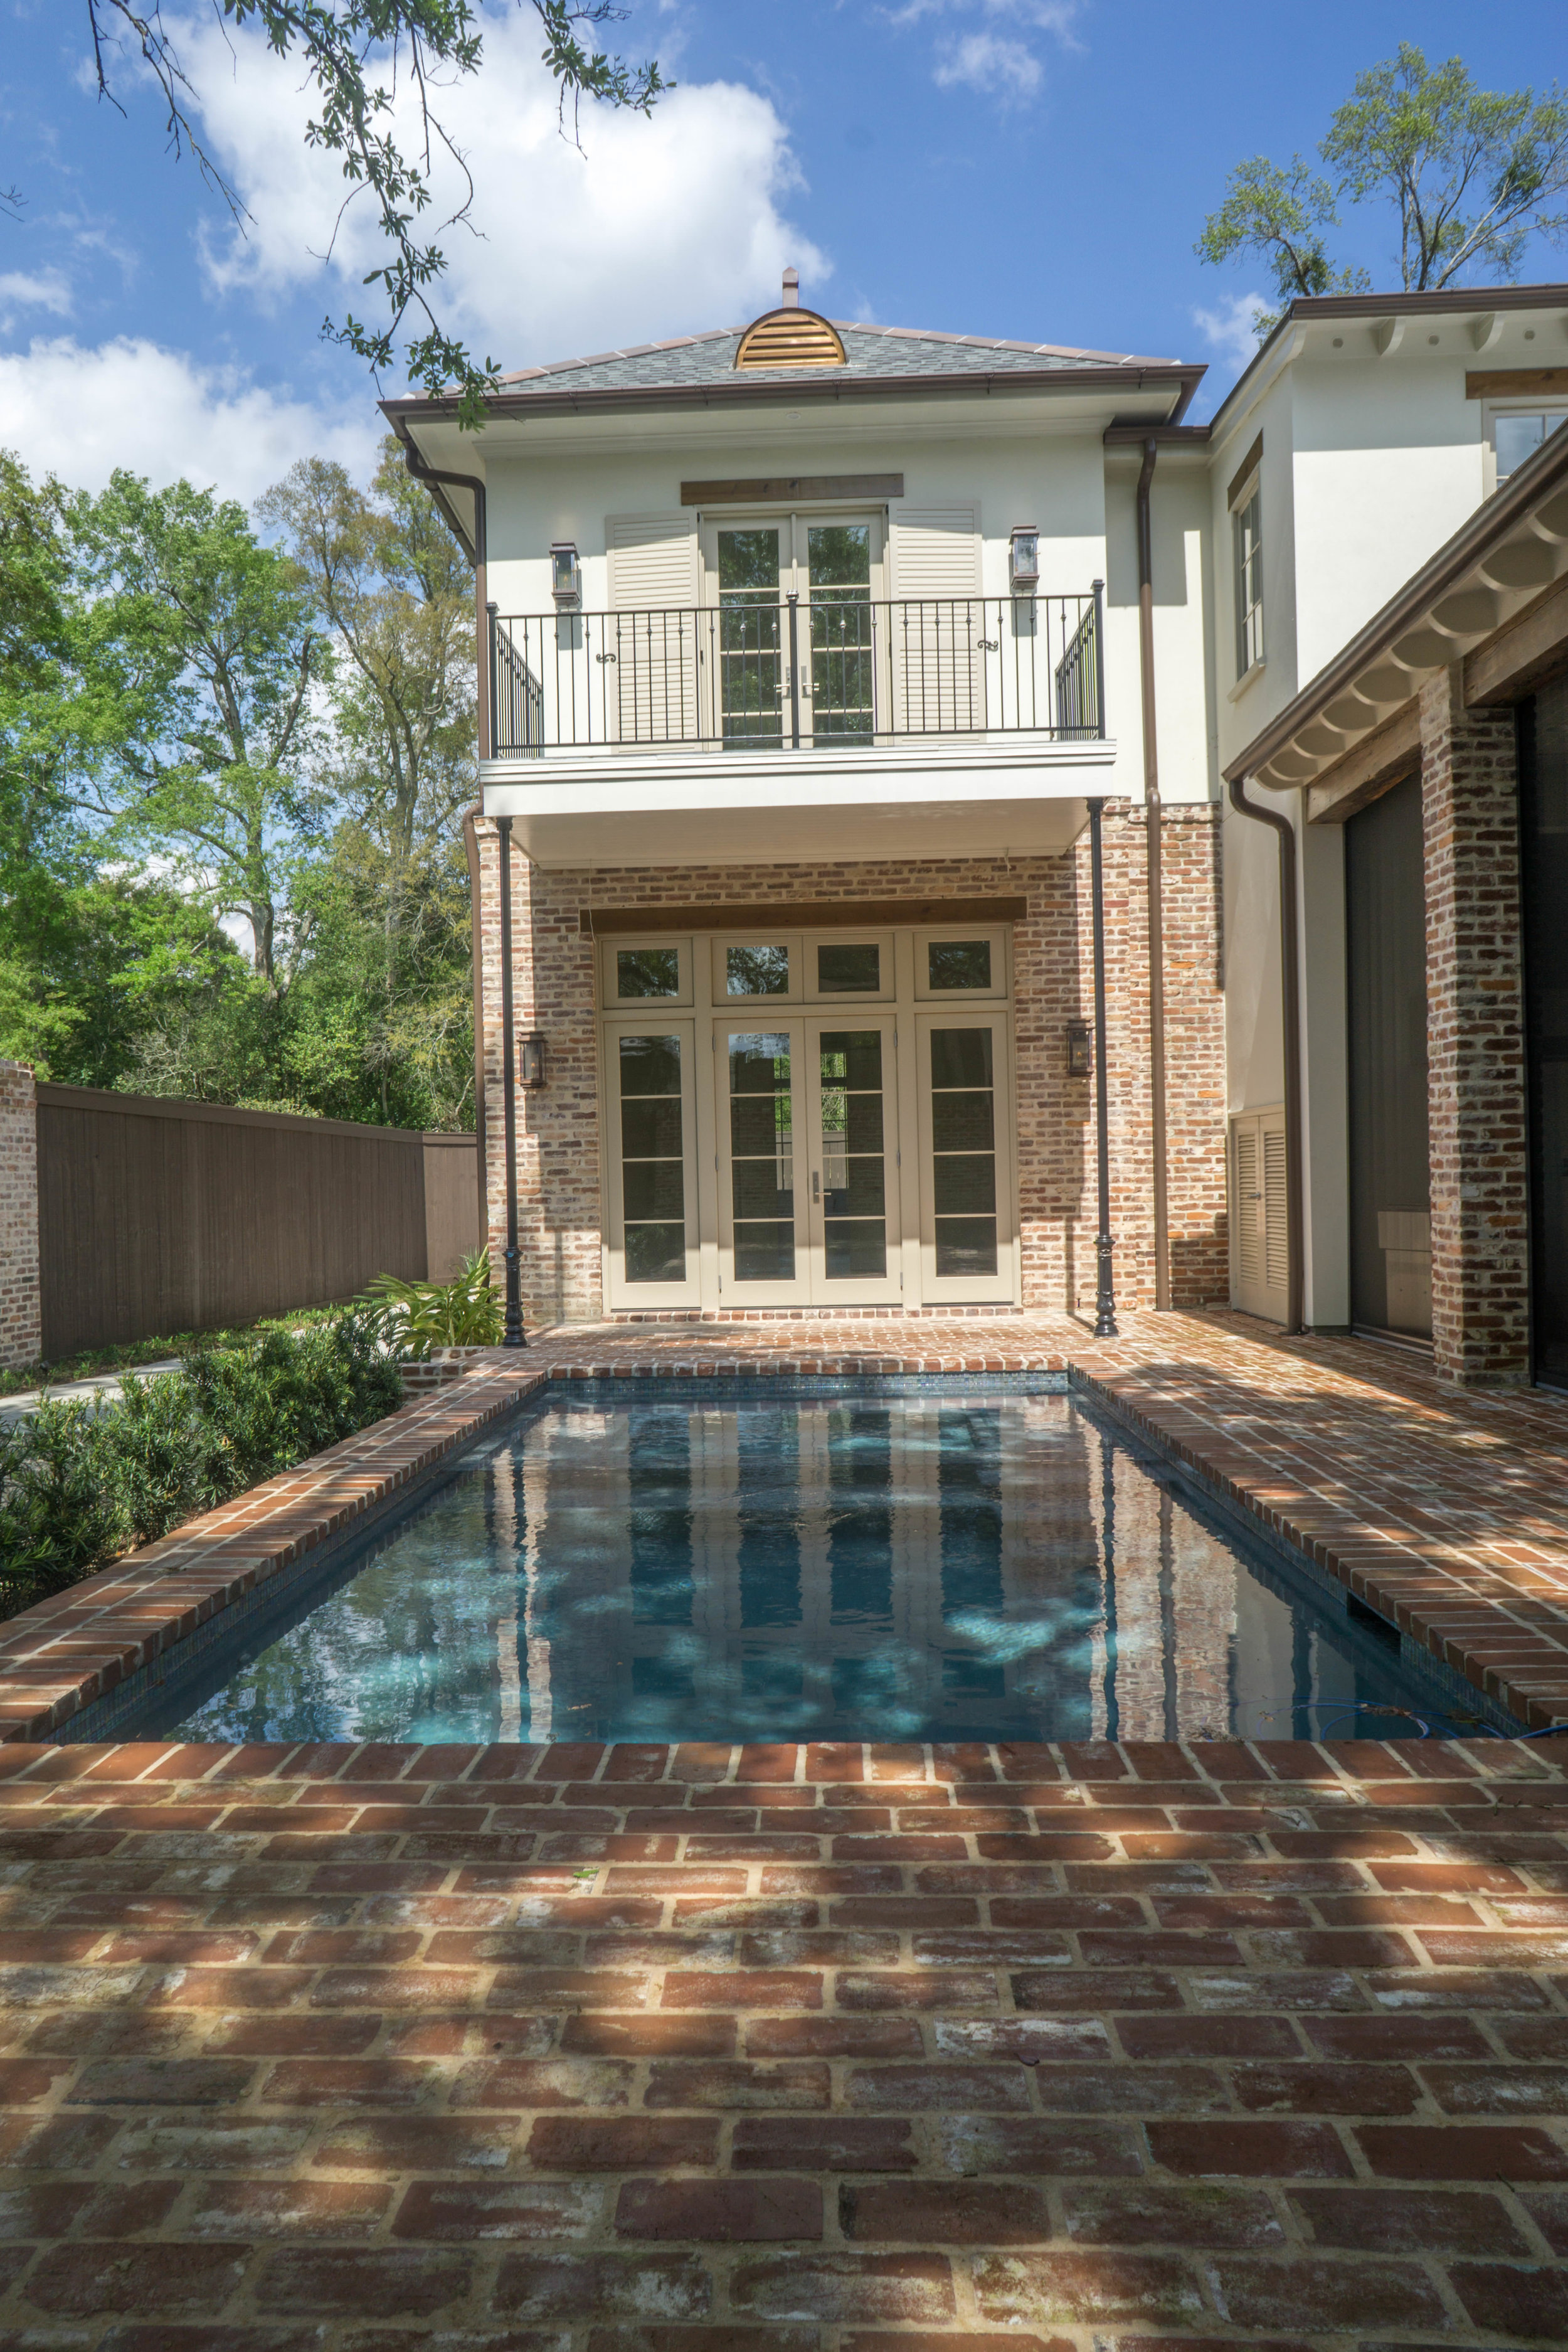 Blair_Construction_Custom_Home_Baton_Rouge1-9.jpg